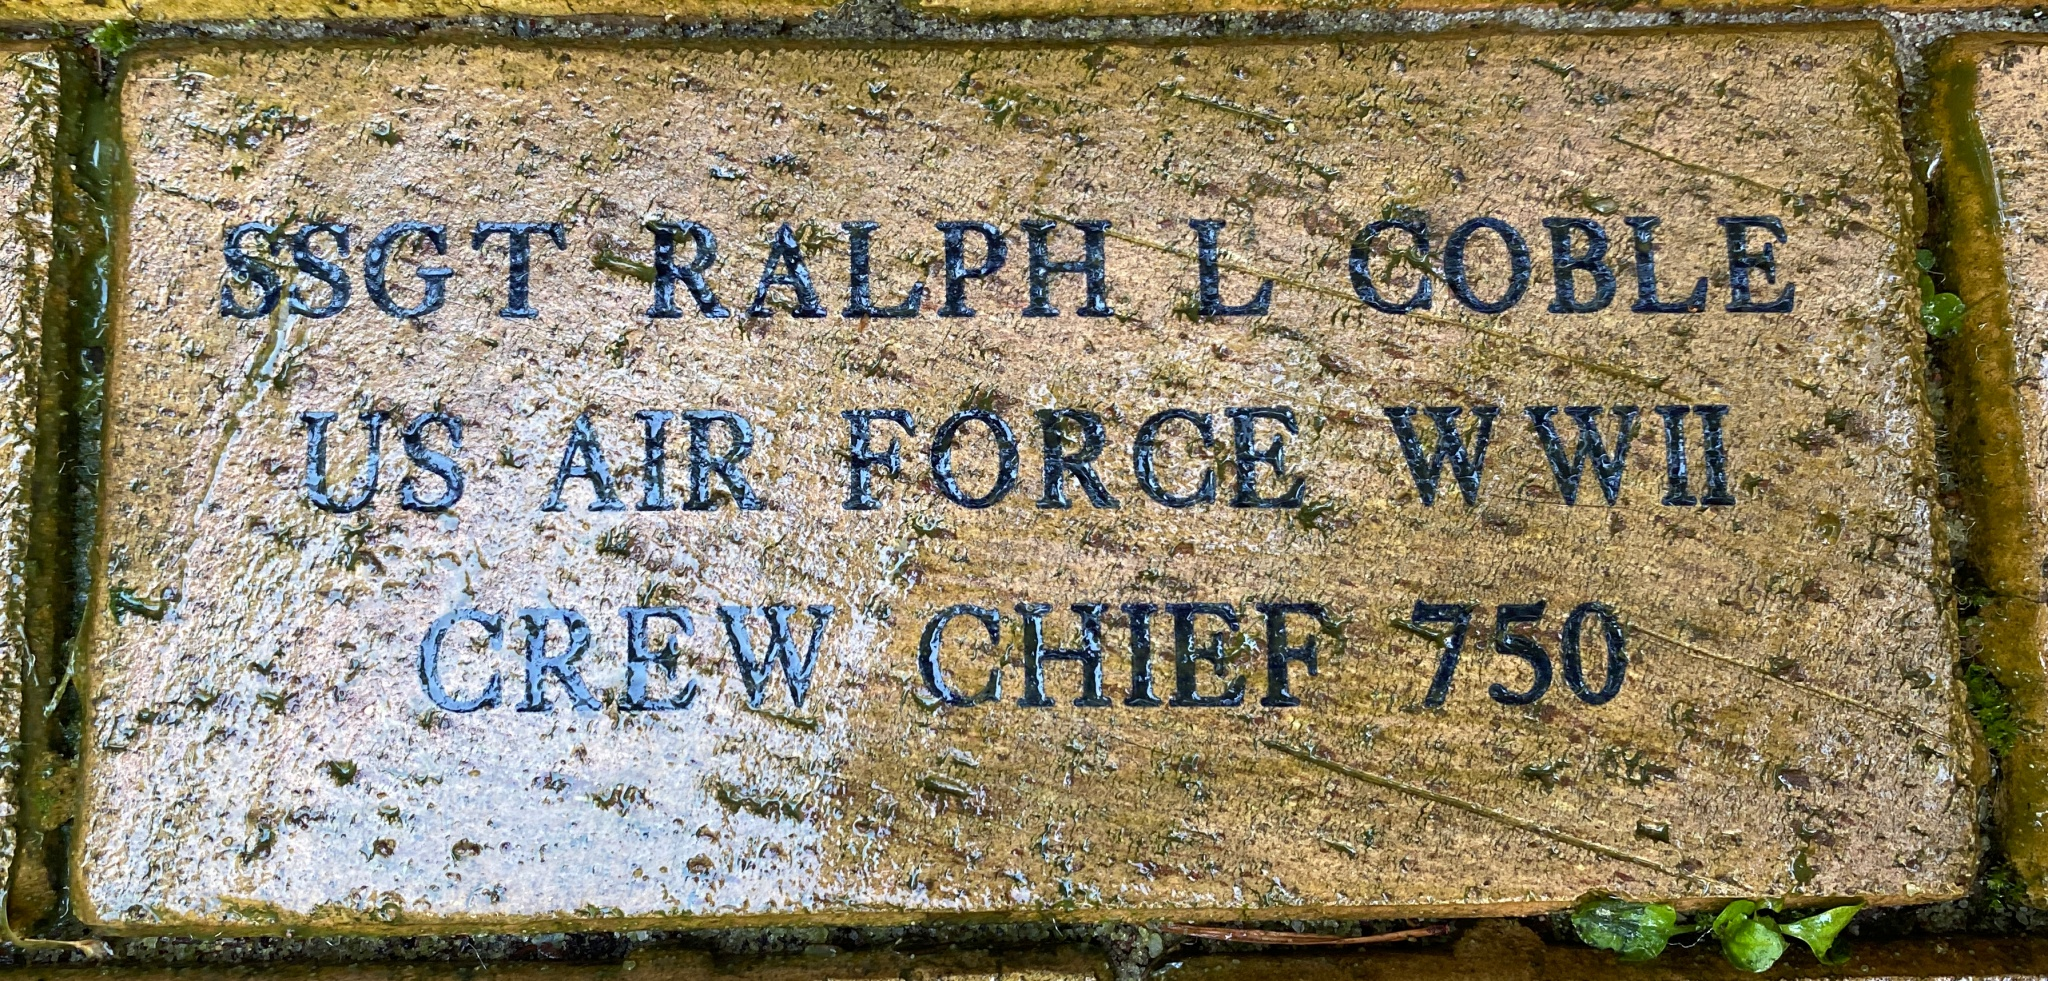 SSGT RALPH L COBLE US AIR FORCE WWII CREW CHIEF 750